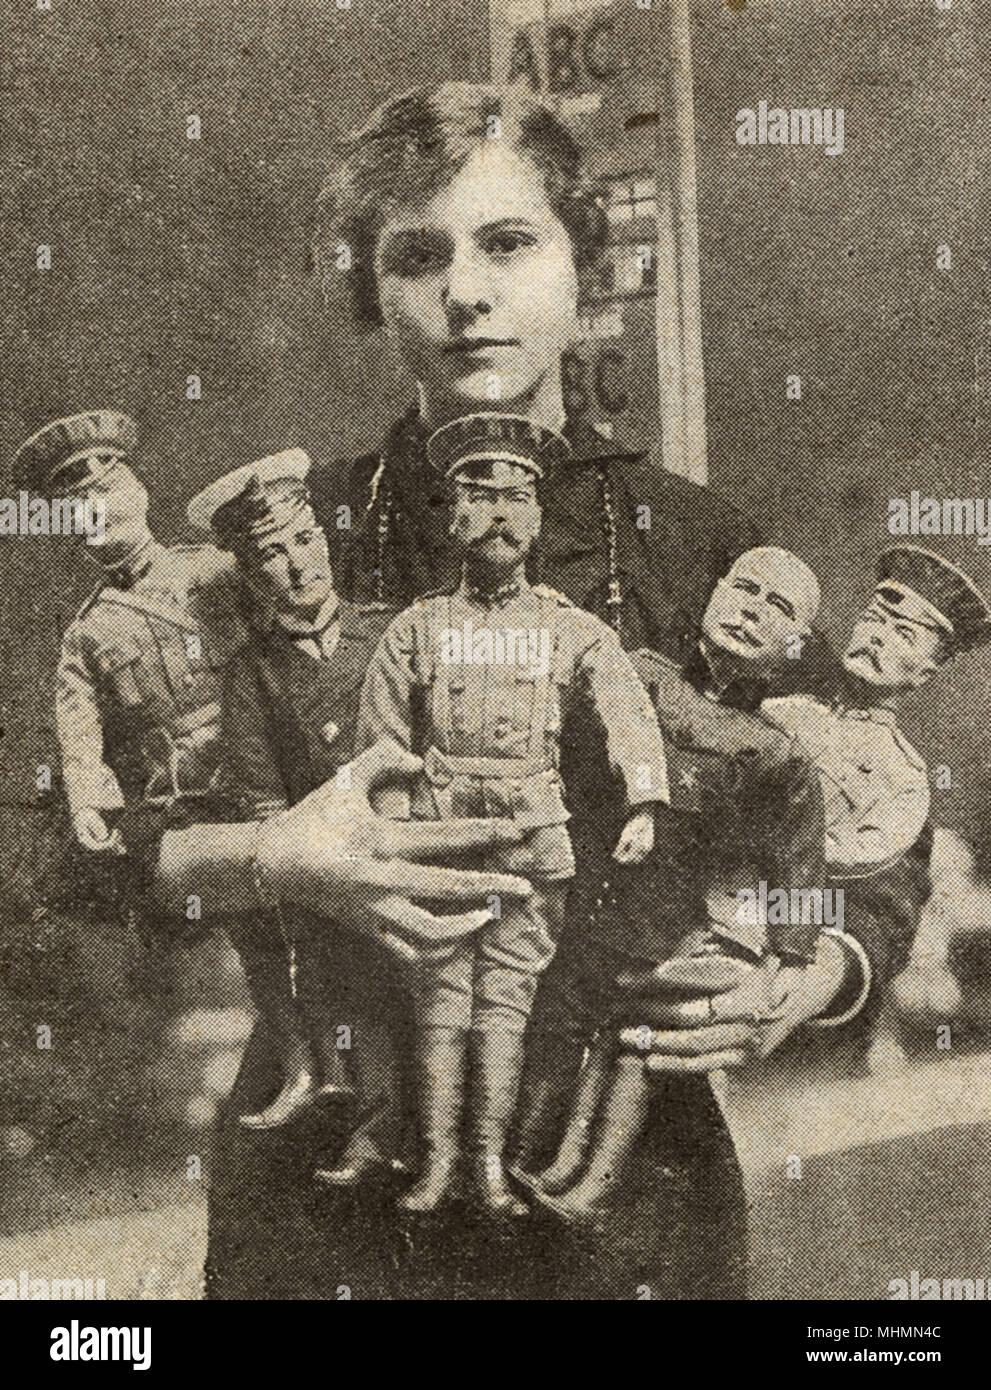 An female worker posed with war dolls representing the King, Lord Kitchener, Sir John French, Sir John Jellicoe and General Joffre.  A selection of British-made toys during the First World War.  Before the war, Germany had been the premier supplier of toys to Britain, but British industry quickly adapted, employing many women in the process.       Date: 1915 - Stock Image